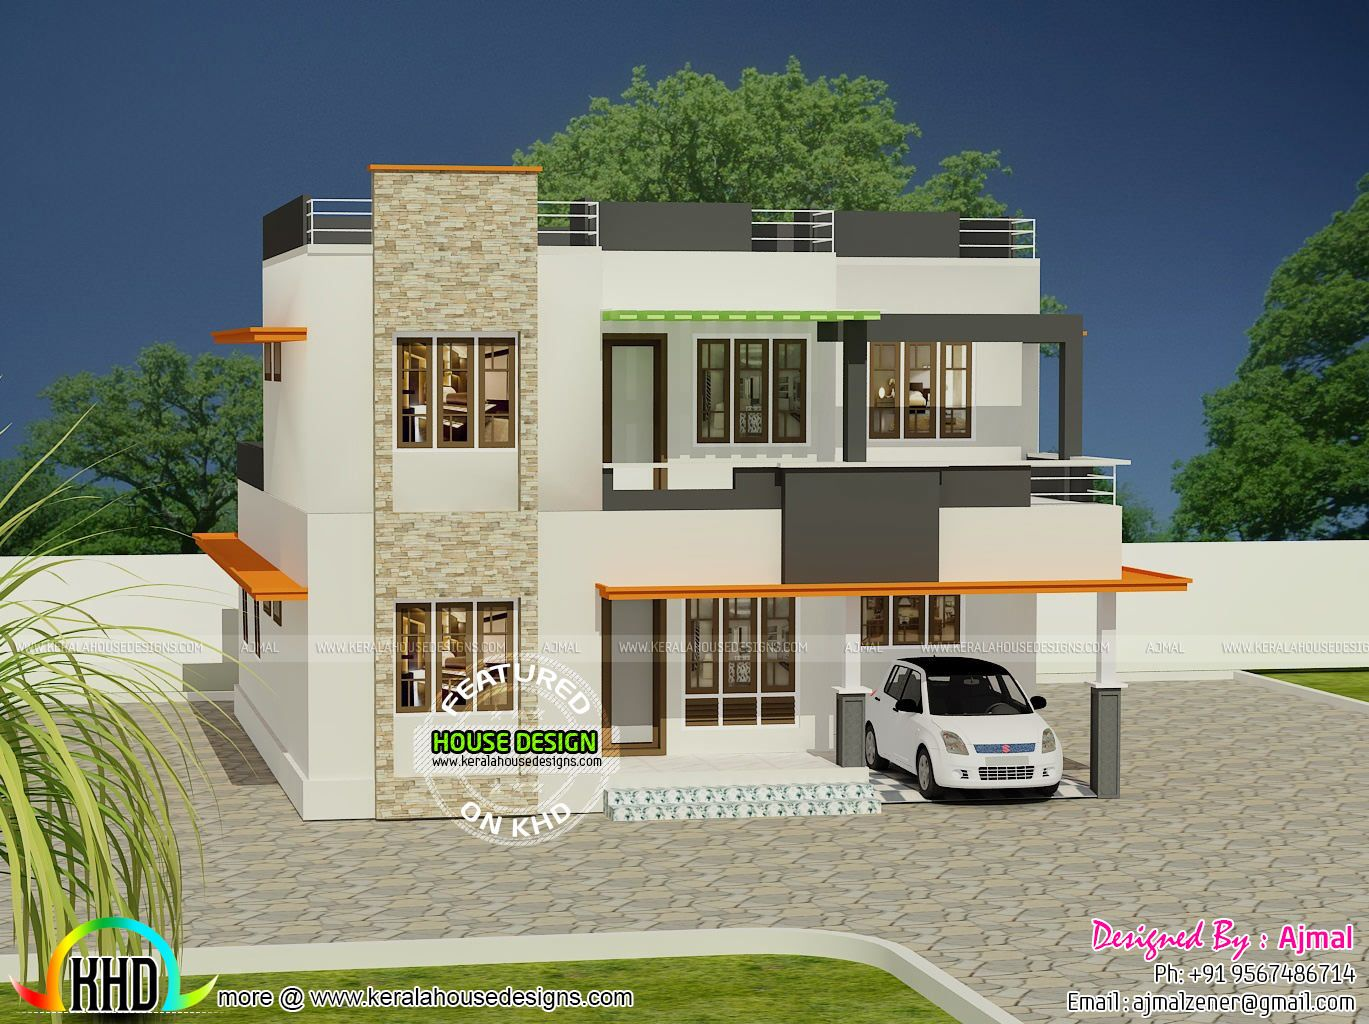 House Design Under 20 Lakhs in 2020 | Bungalow house ...